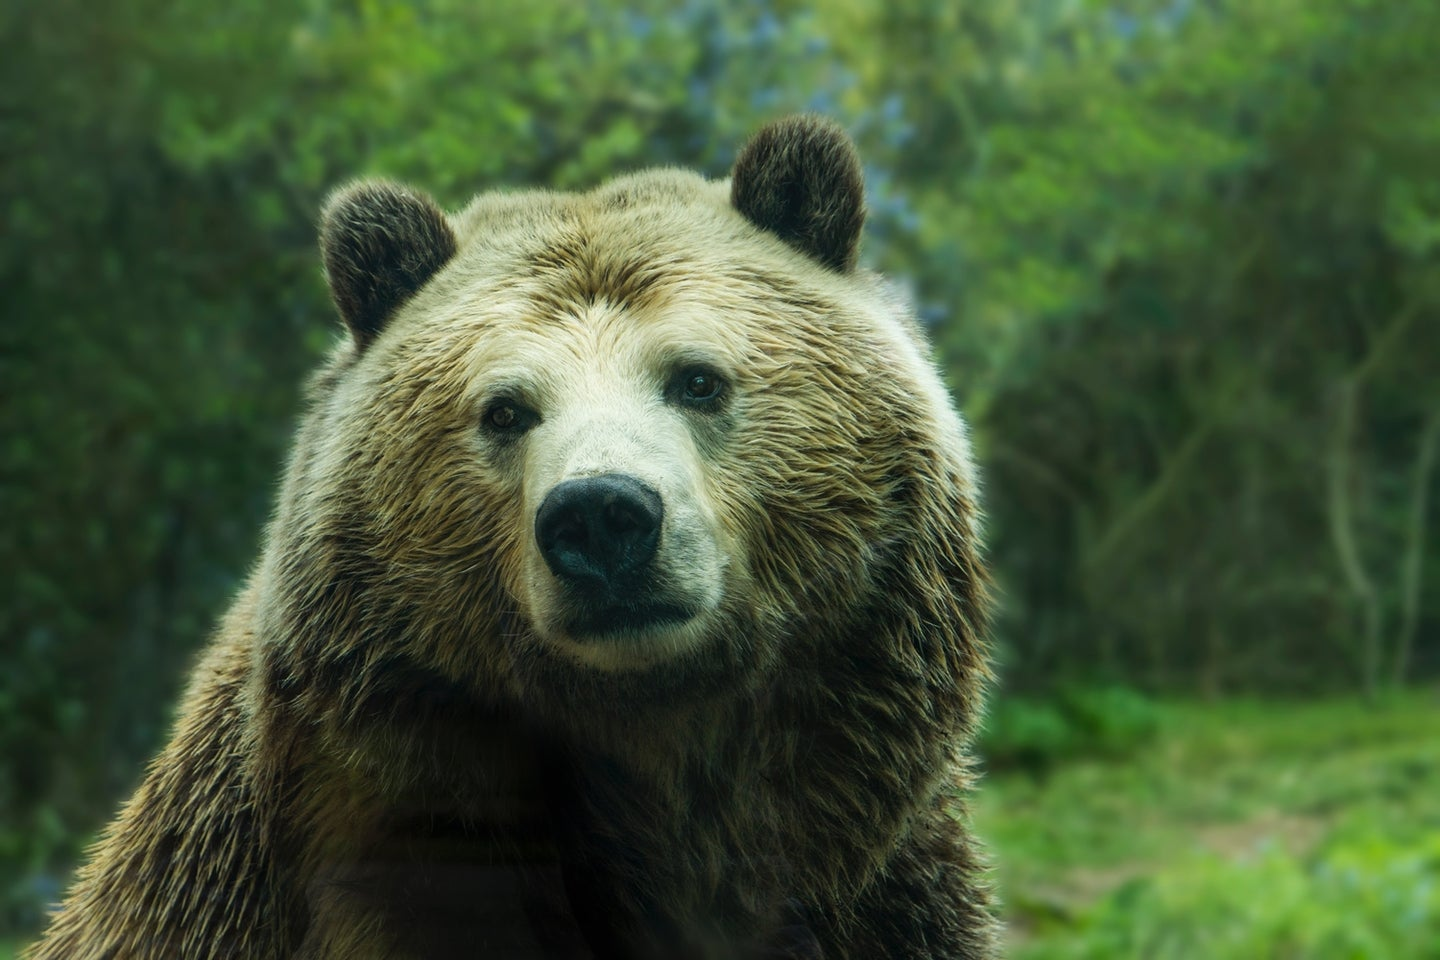 How to survive a grizzly encounter